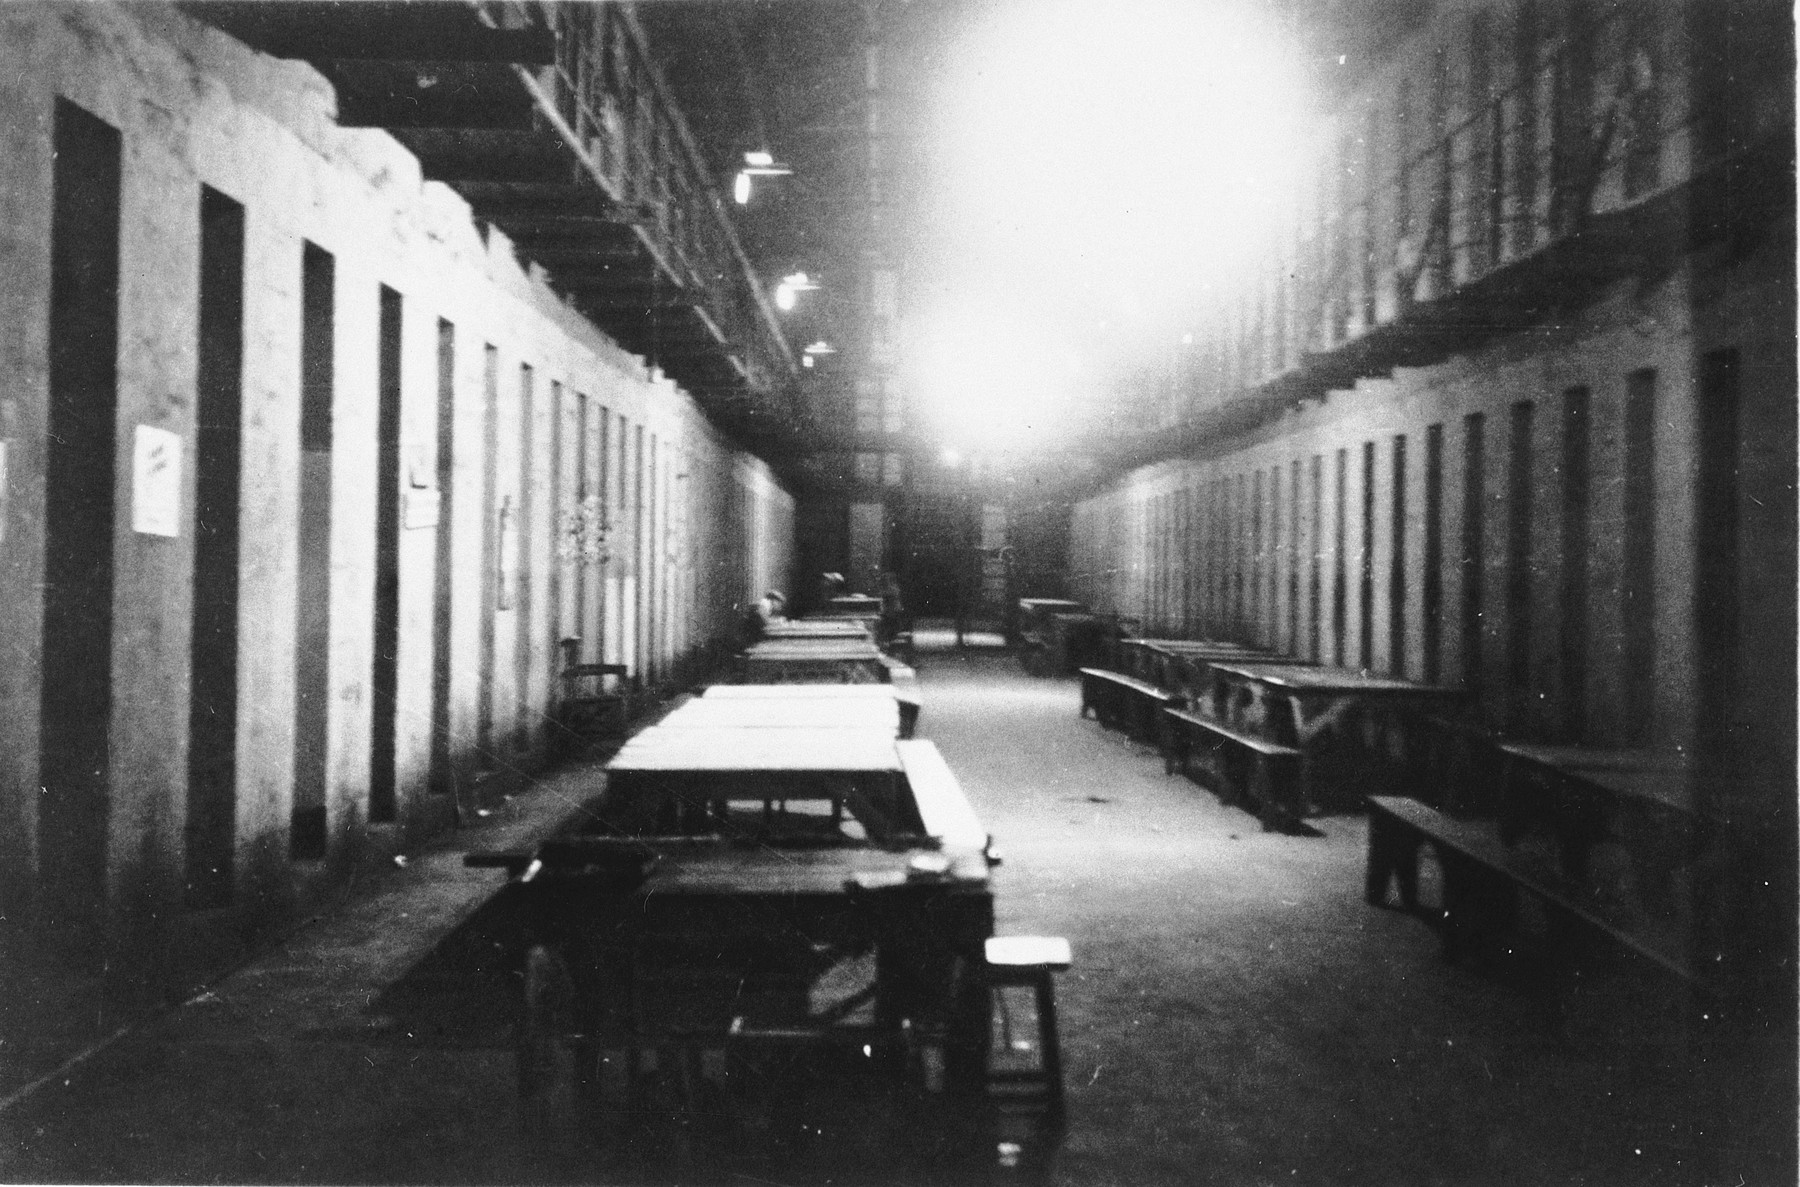 Interior view of the prison in Mauritius that housed the Jewish internees.